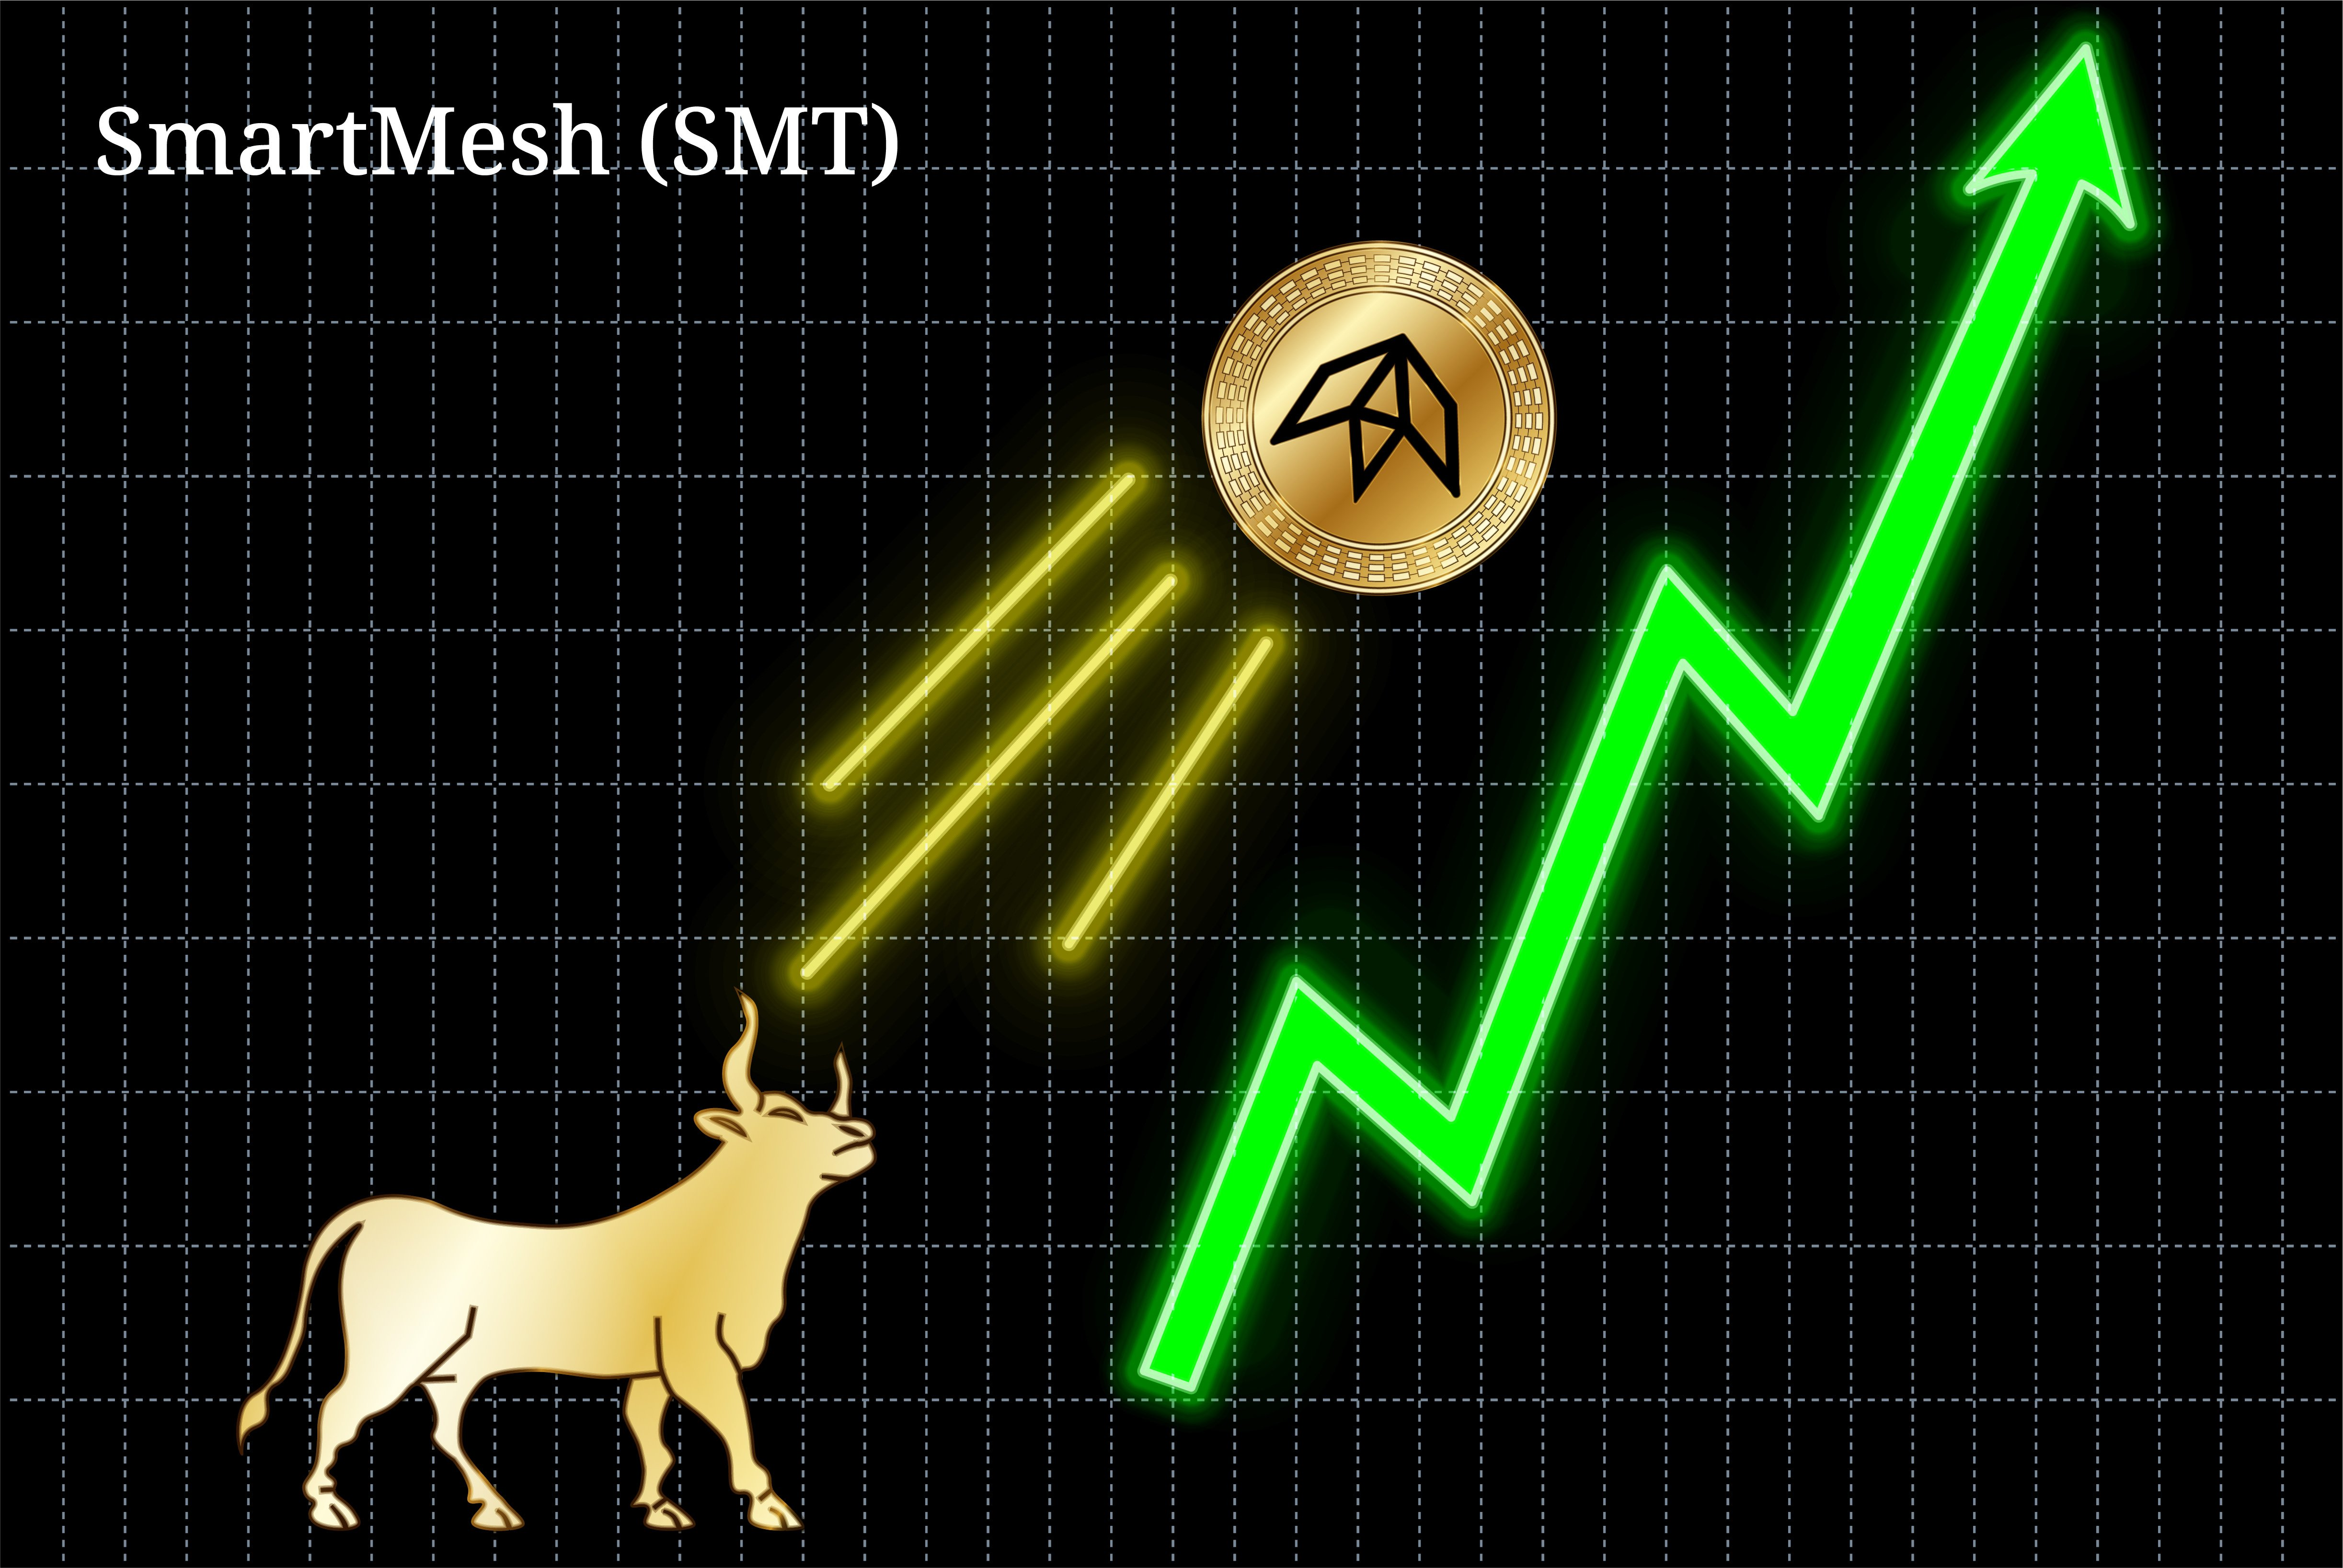 Gold bull throwing up SmartMesh